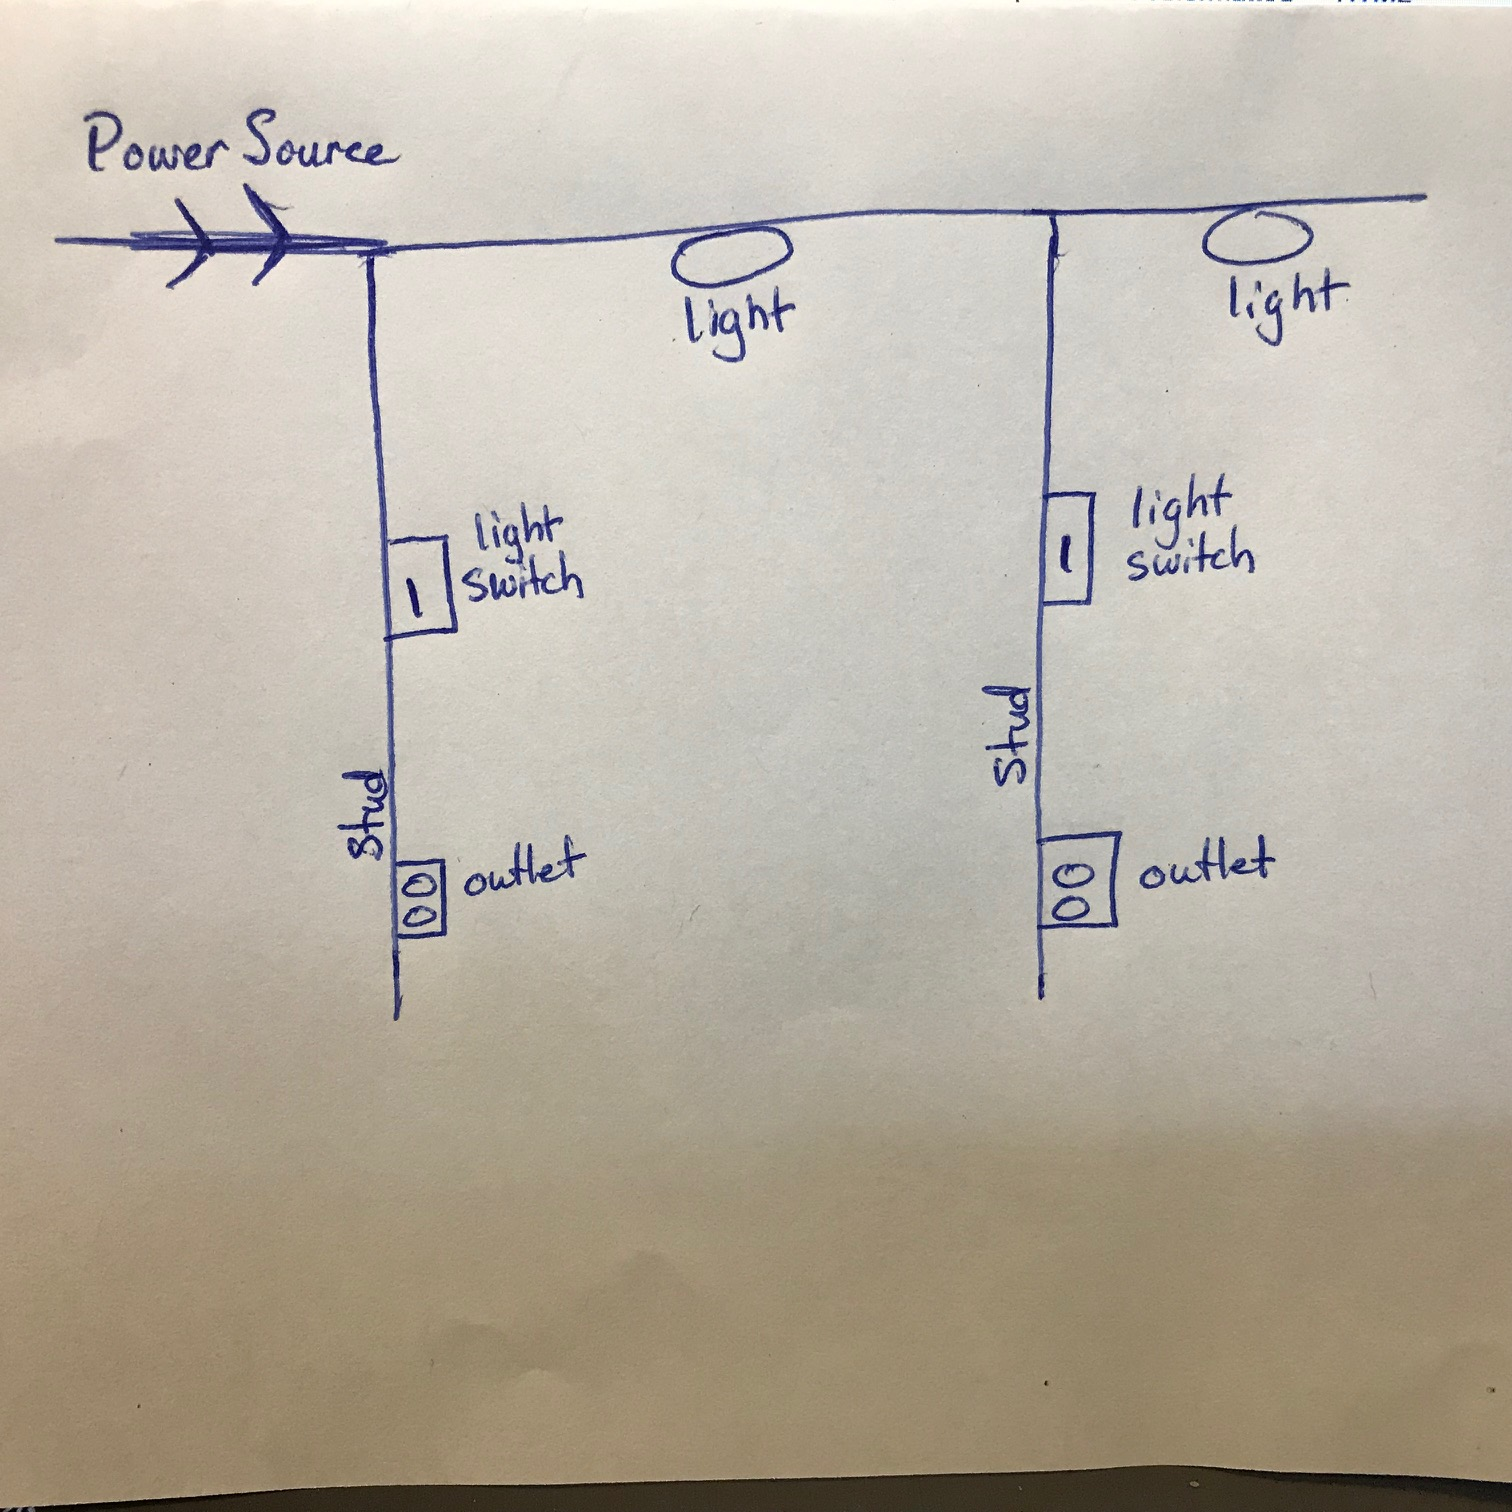 wiring lights and outlets on same circuit diagram kenwood radio harness electrical what is the proper safe to two